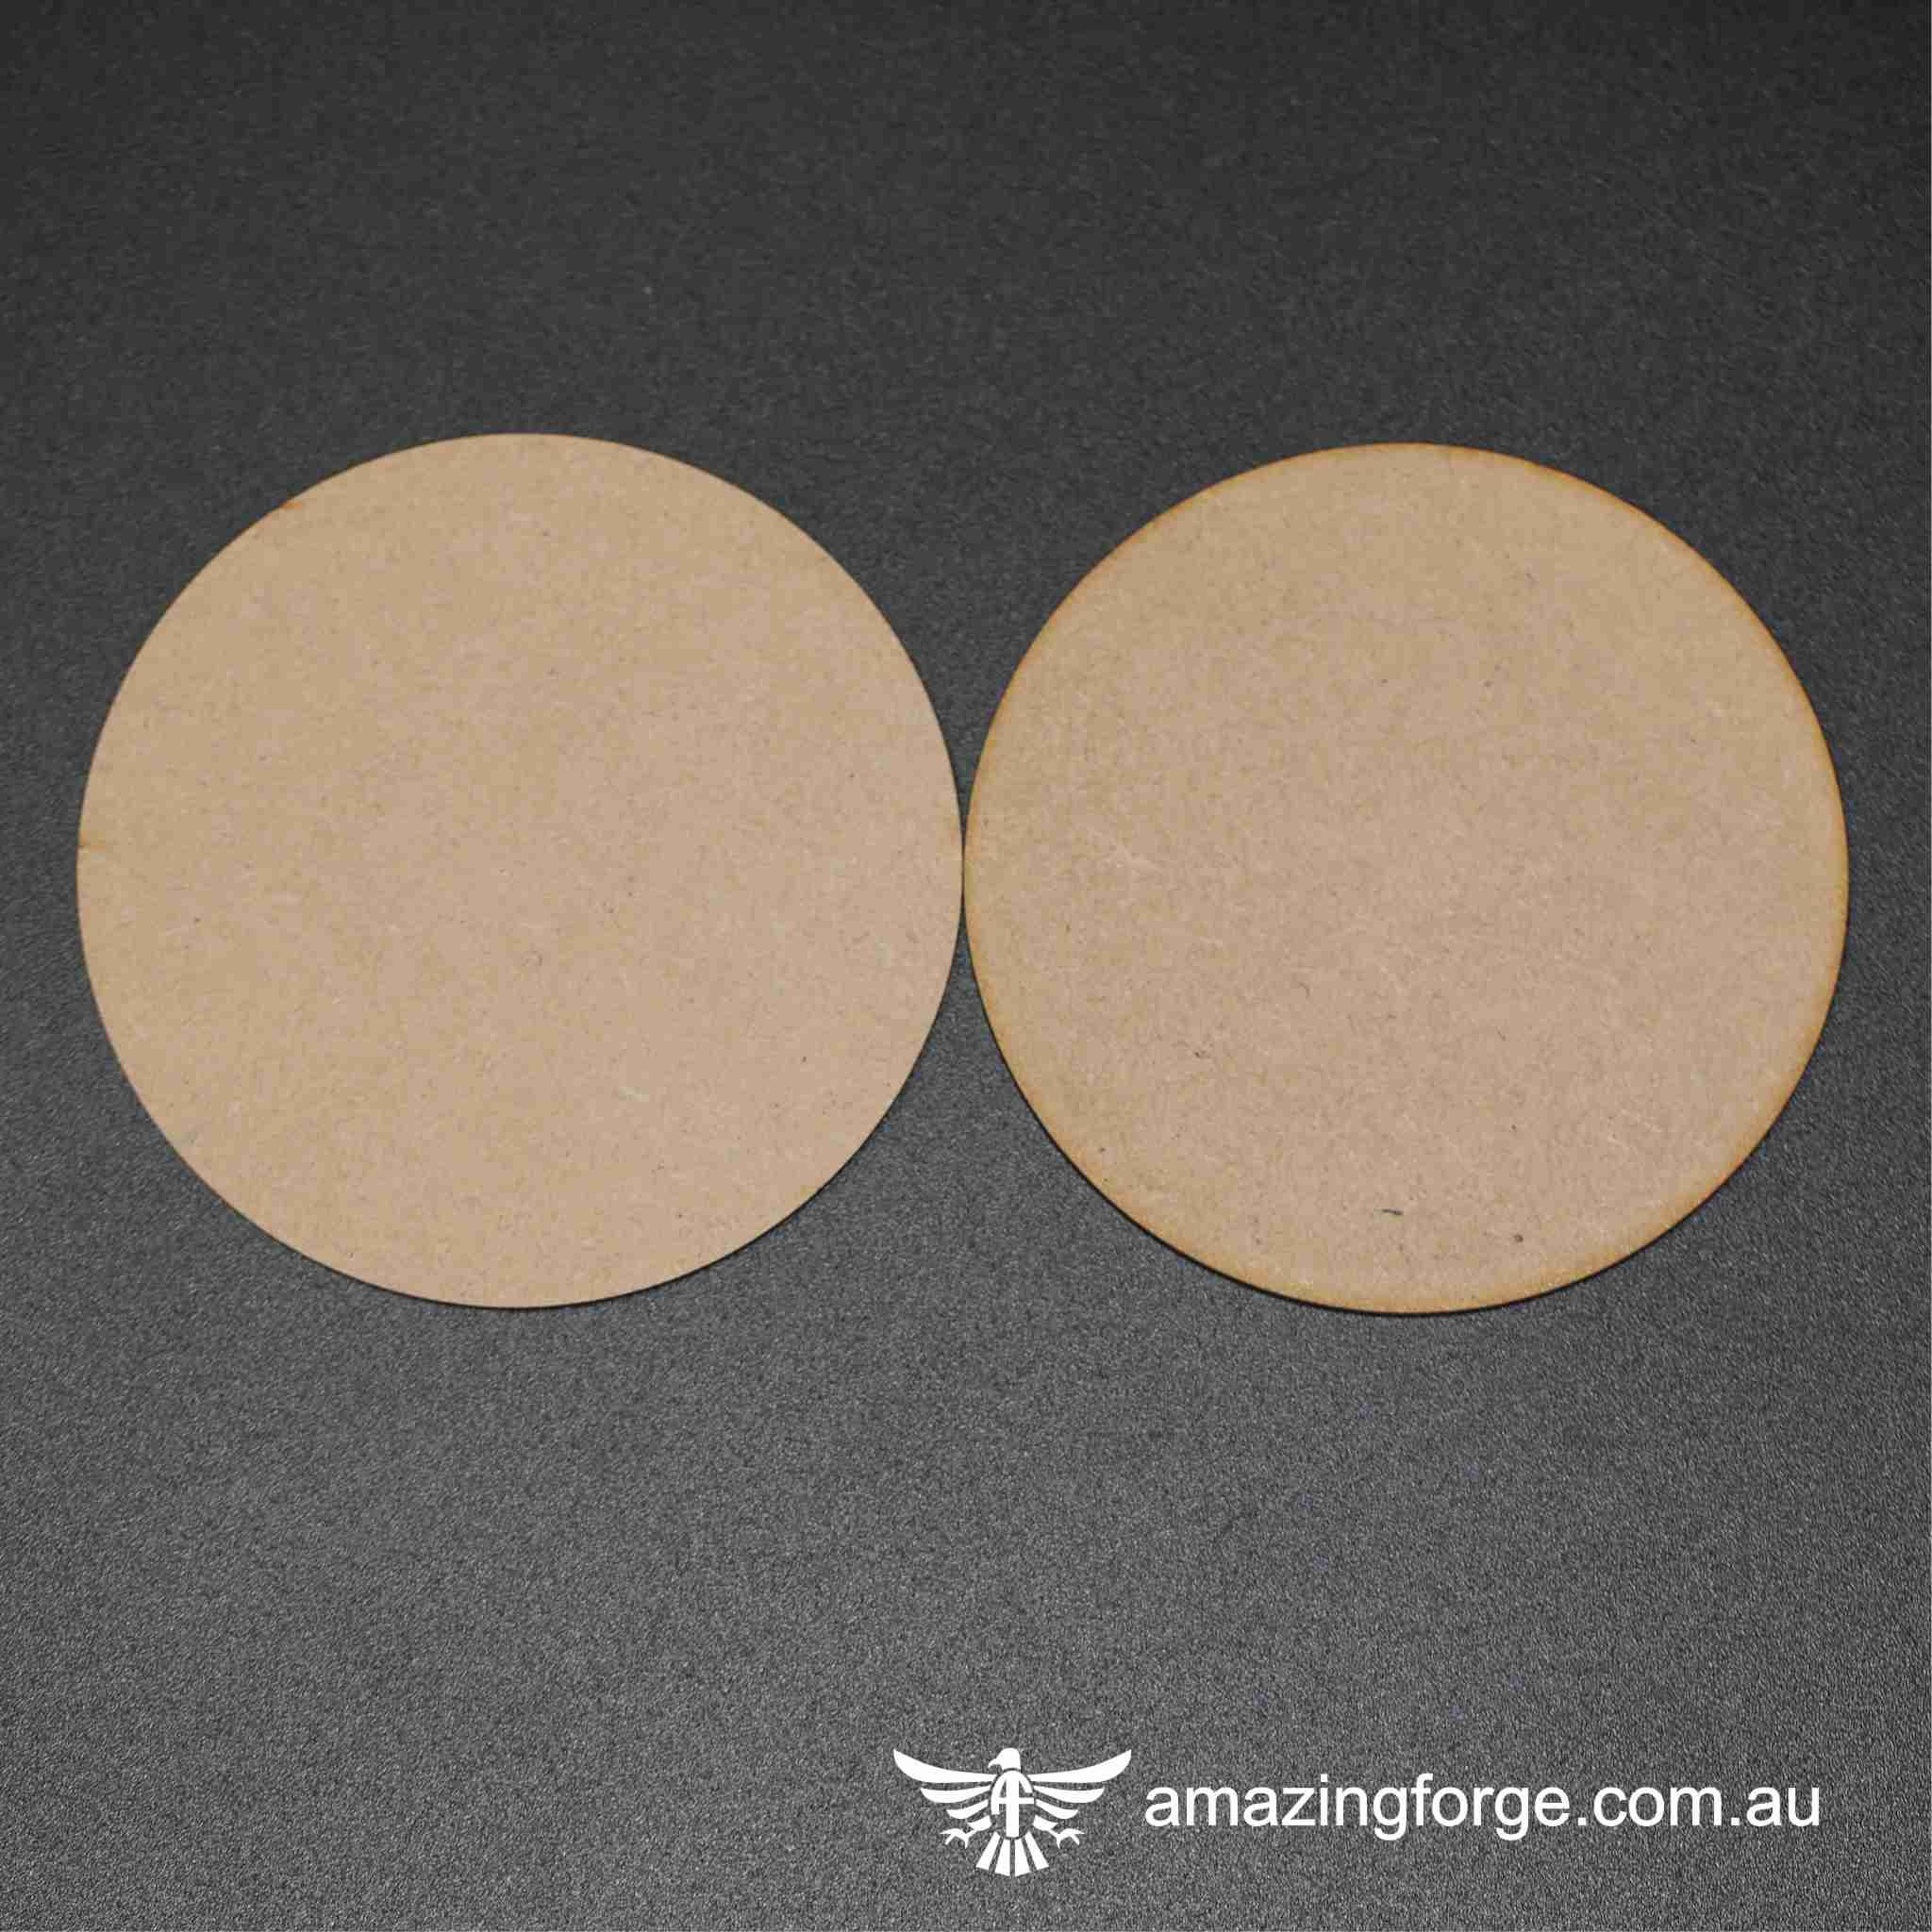 160mm Round Bases (qty 2)